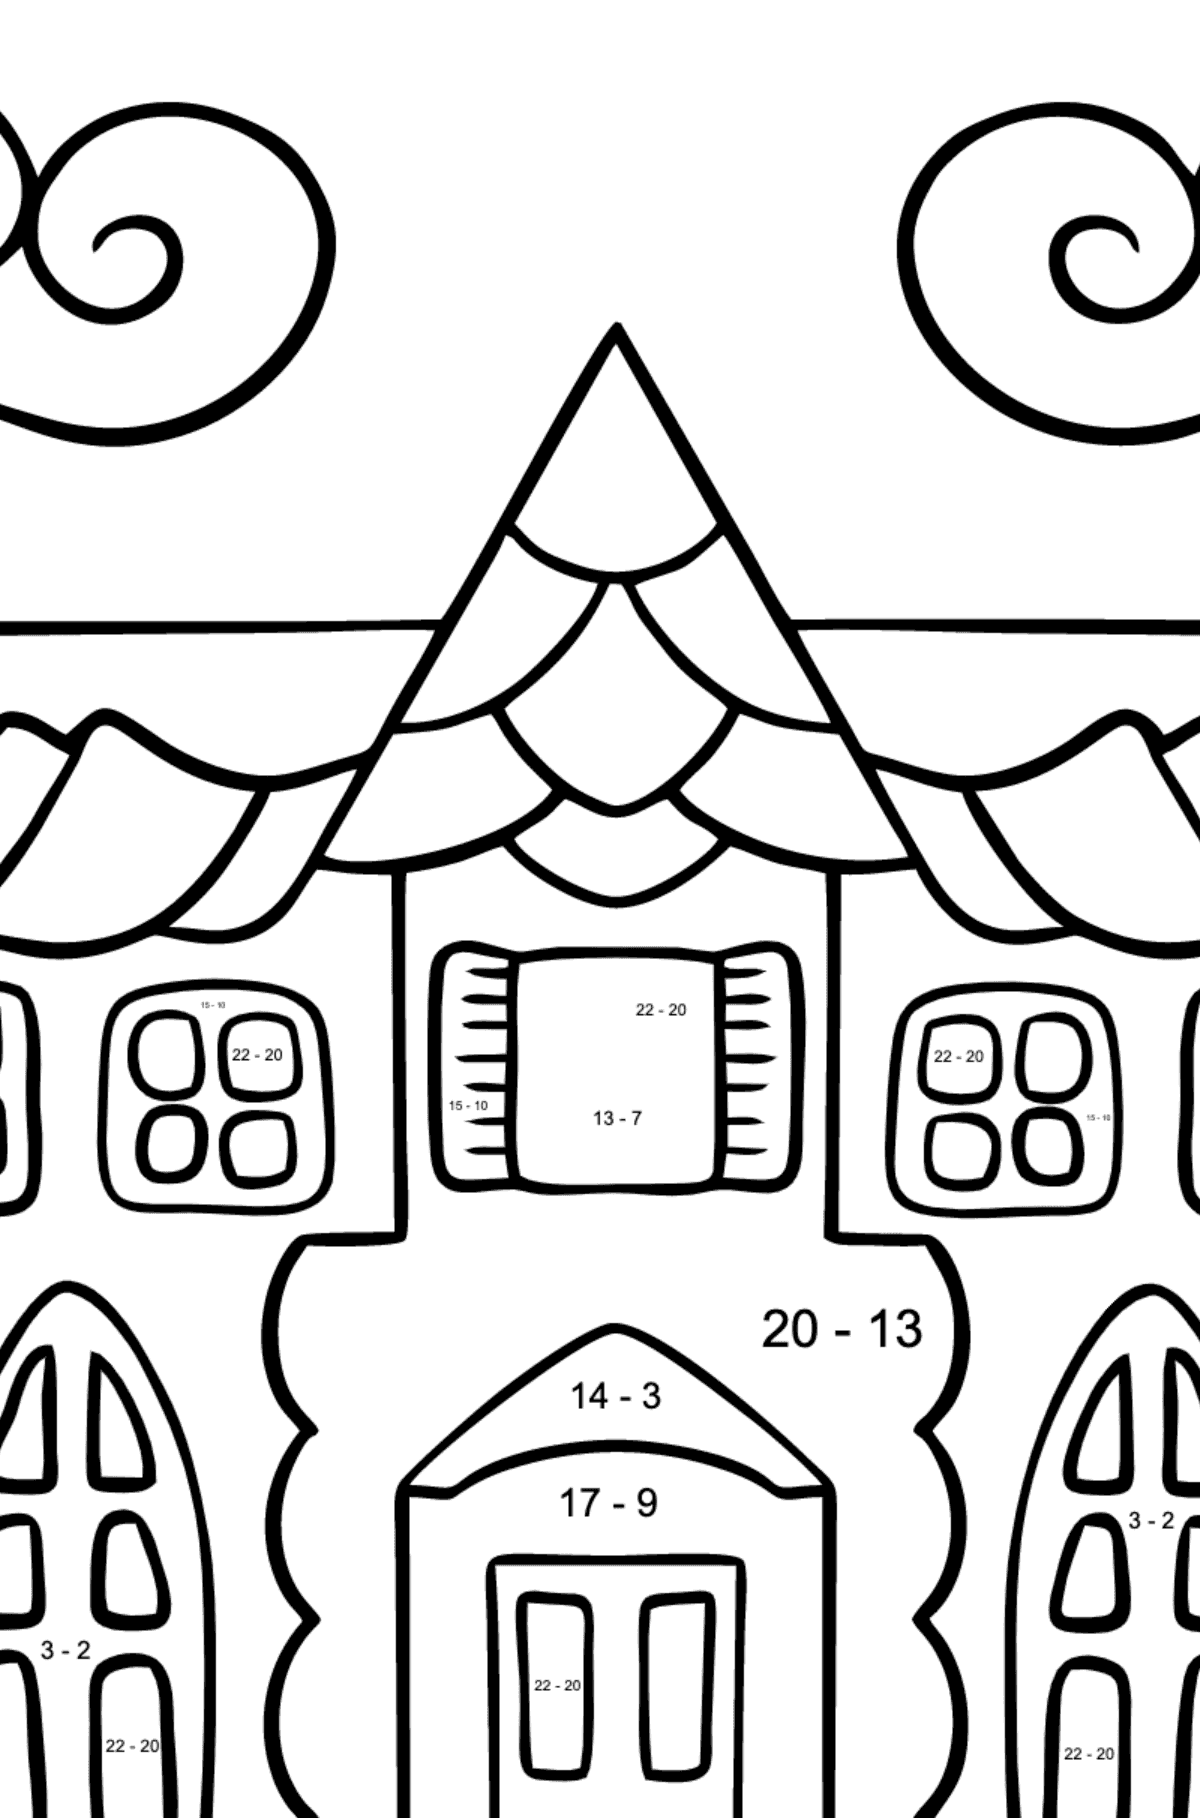 Coloring Page - A House in an Enchanted Kingdom for Children  - Color by Number Substraction